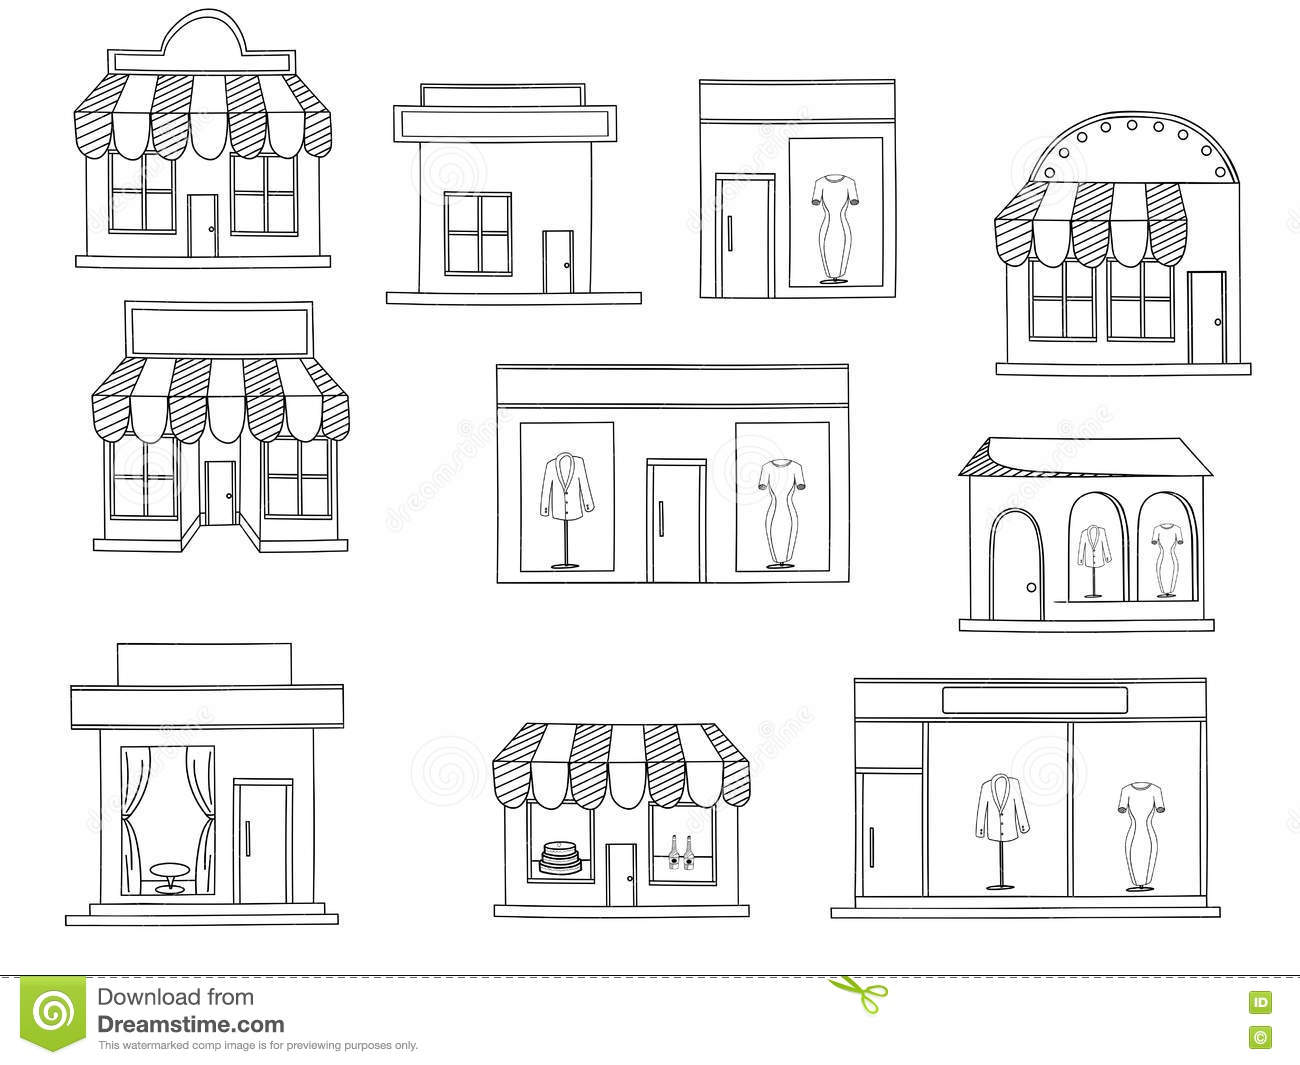 Store Buildings Coloring Book Vector Stock Vector - Illustration of ...